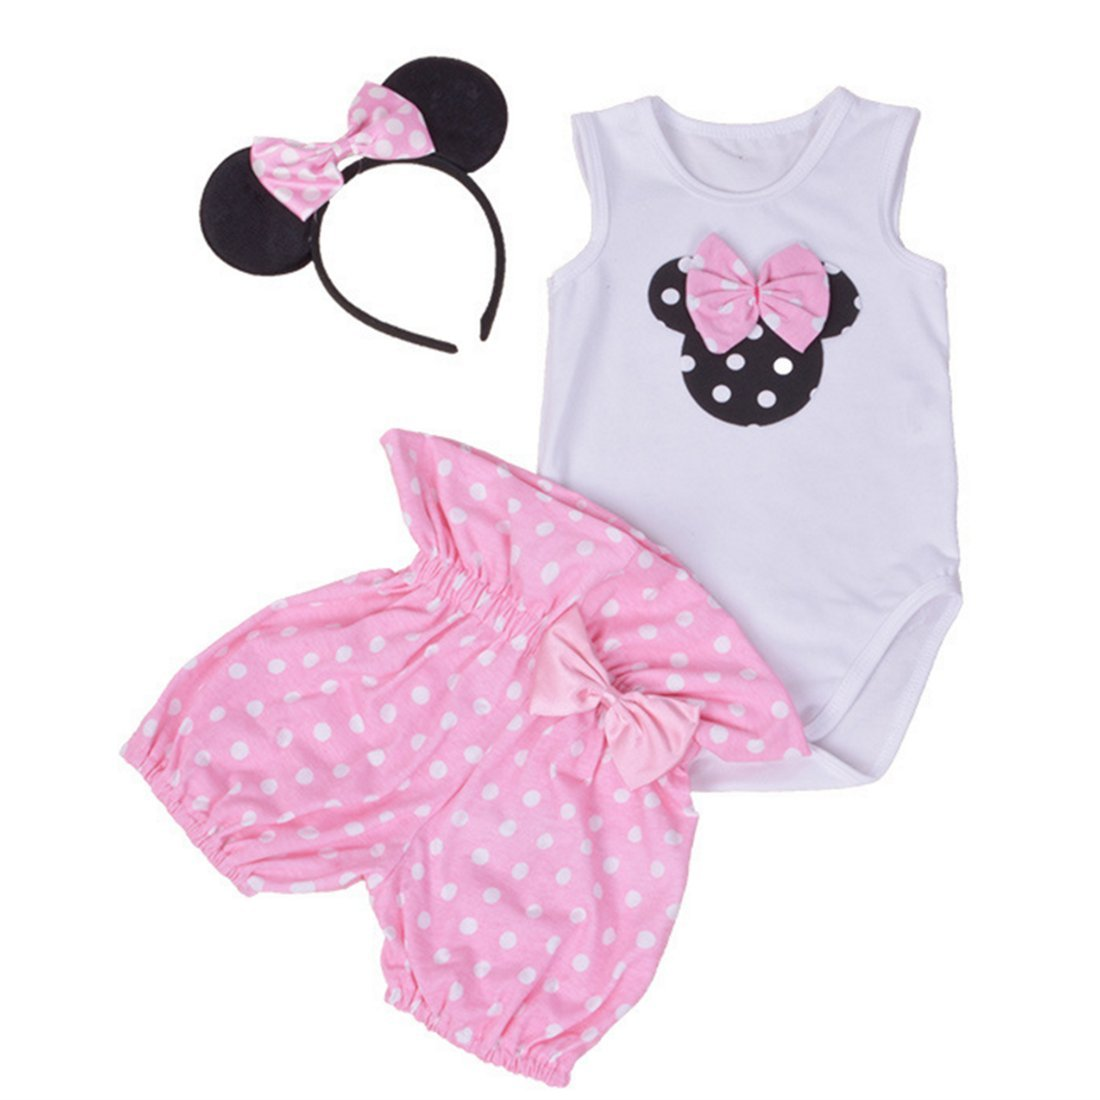 Amberetech Infant Baby Girl Mini Mouse Shorts Suits Romper Outfit 3Pcs Clothing Set (Pink, S(0-3 Months))